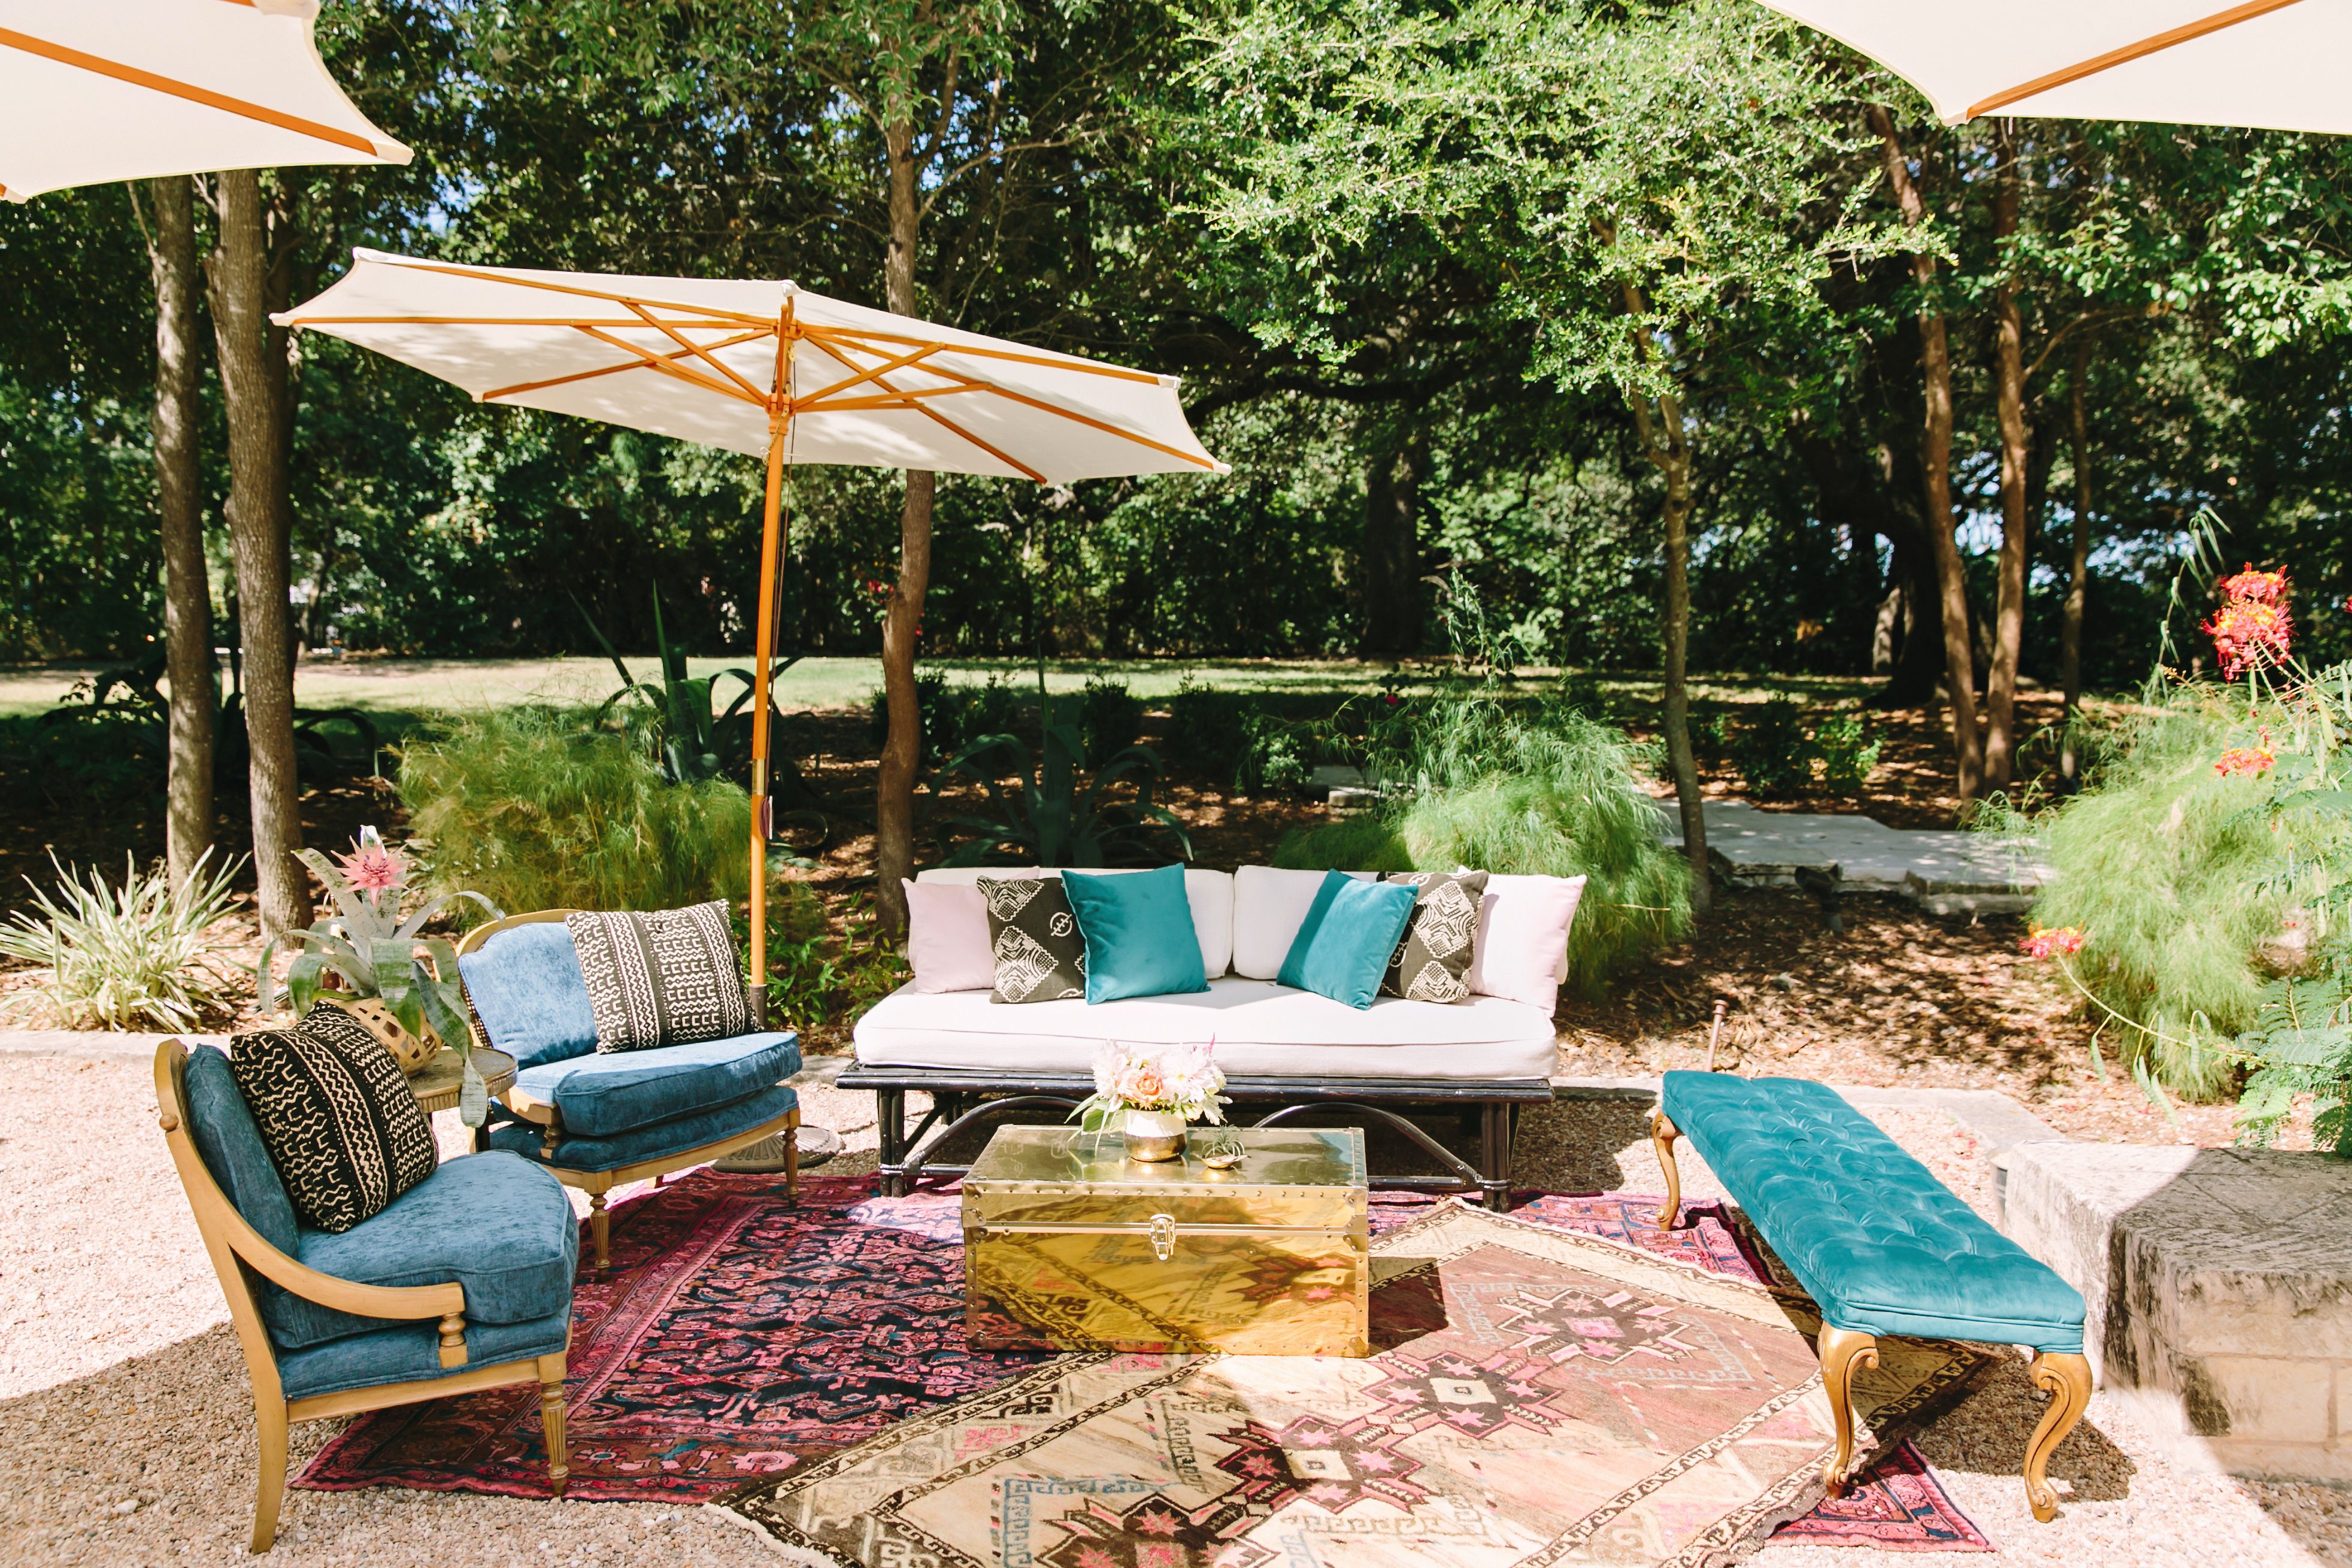 Peach and Blue Outdoor Lounge Furniture Rental | Mercury ...